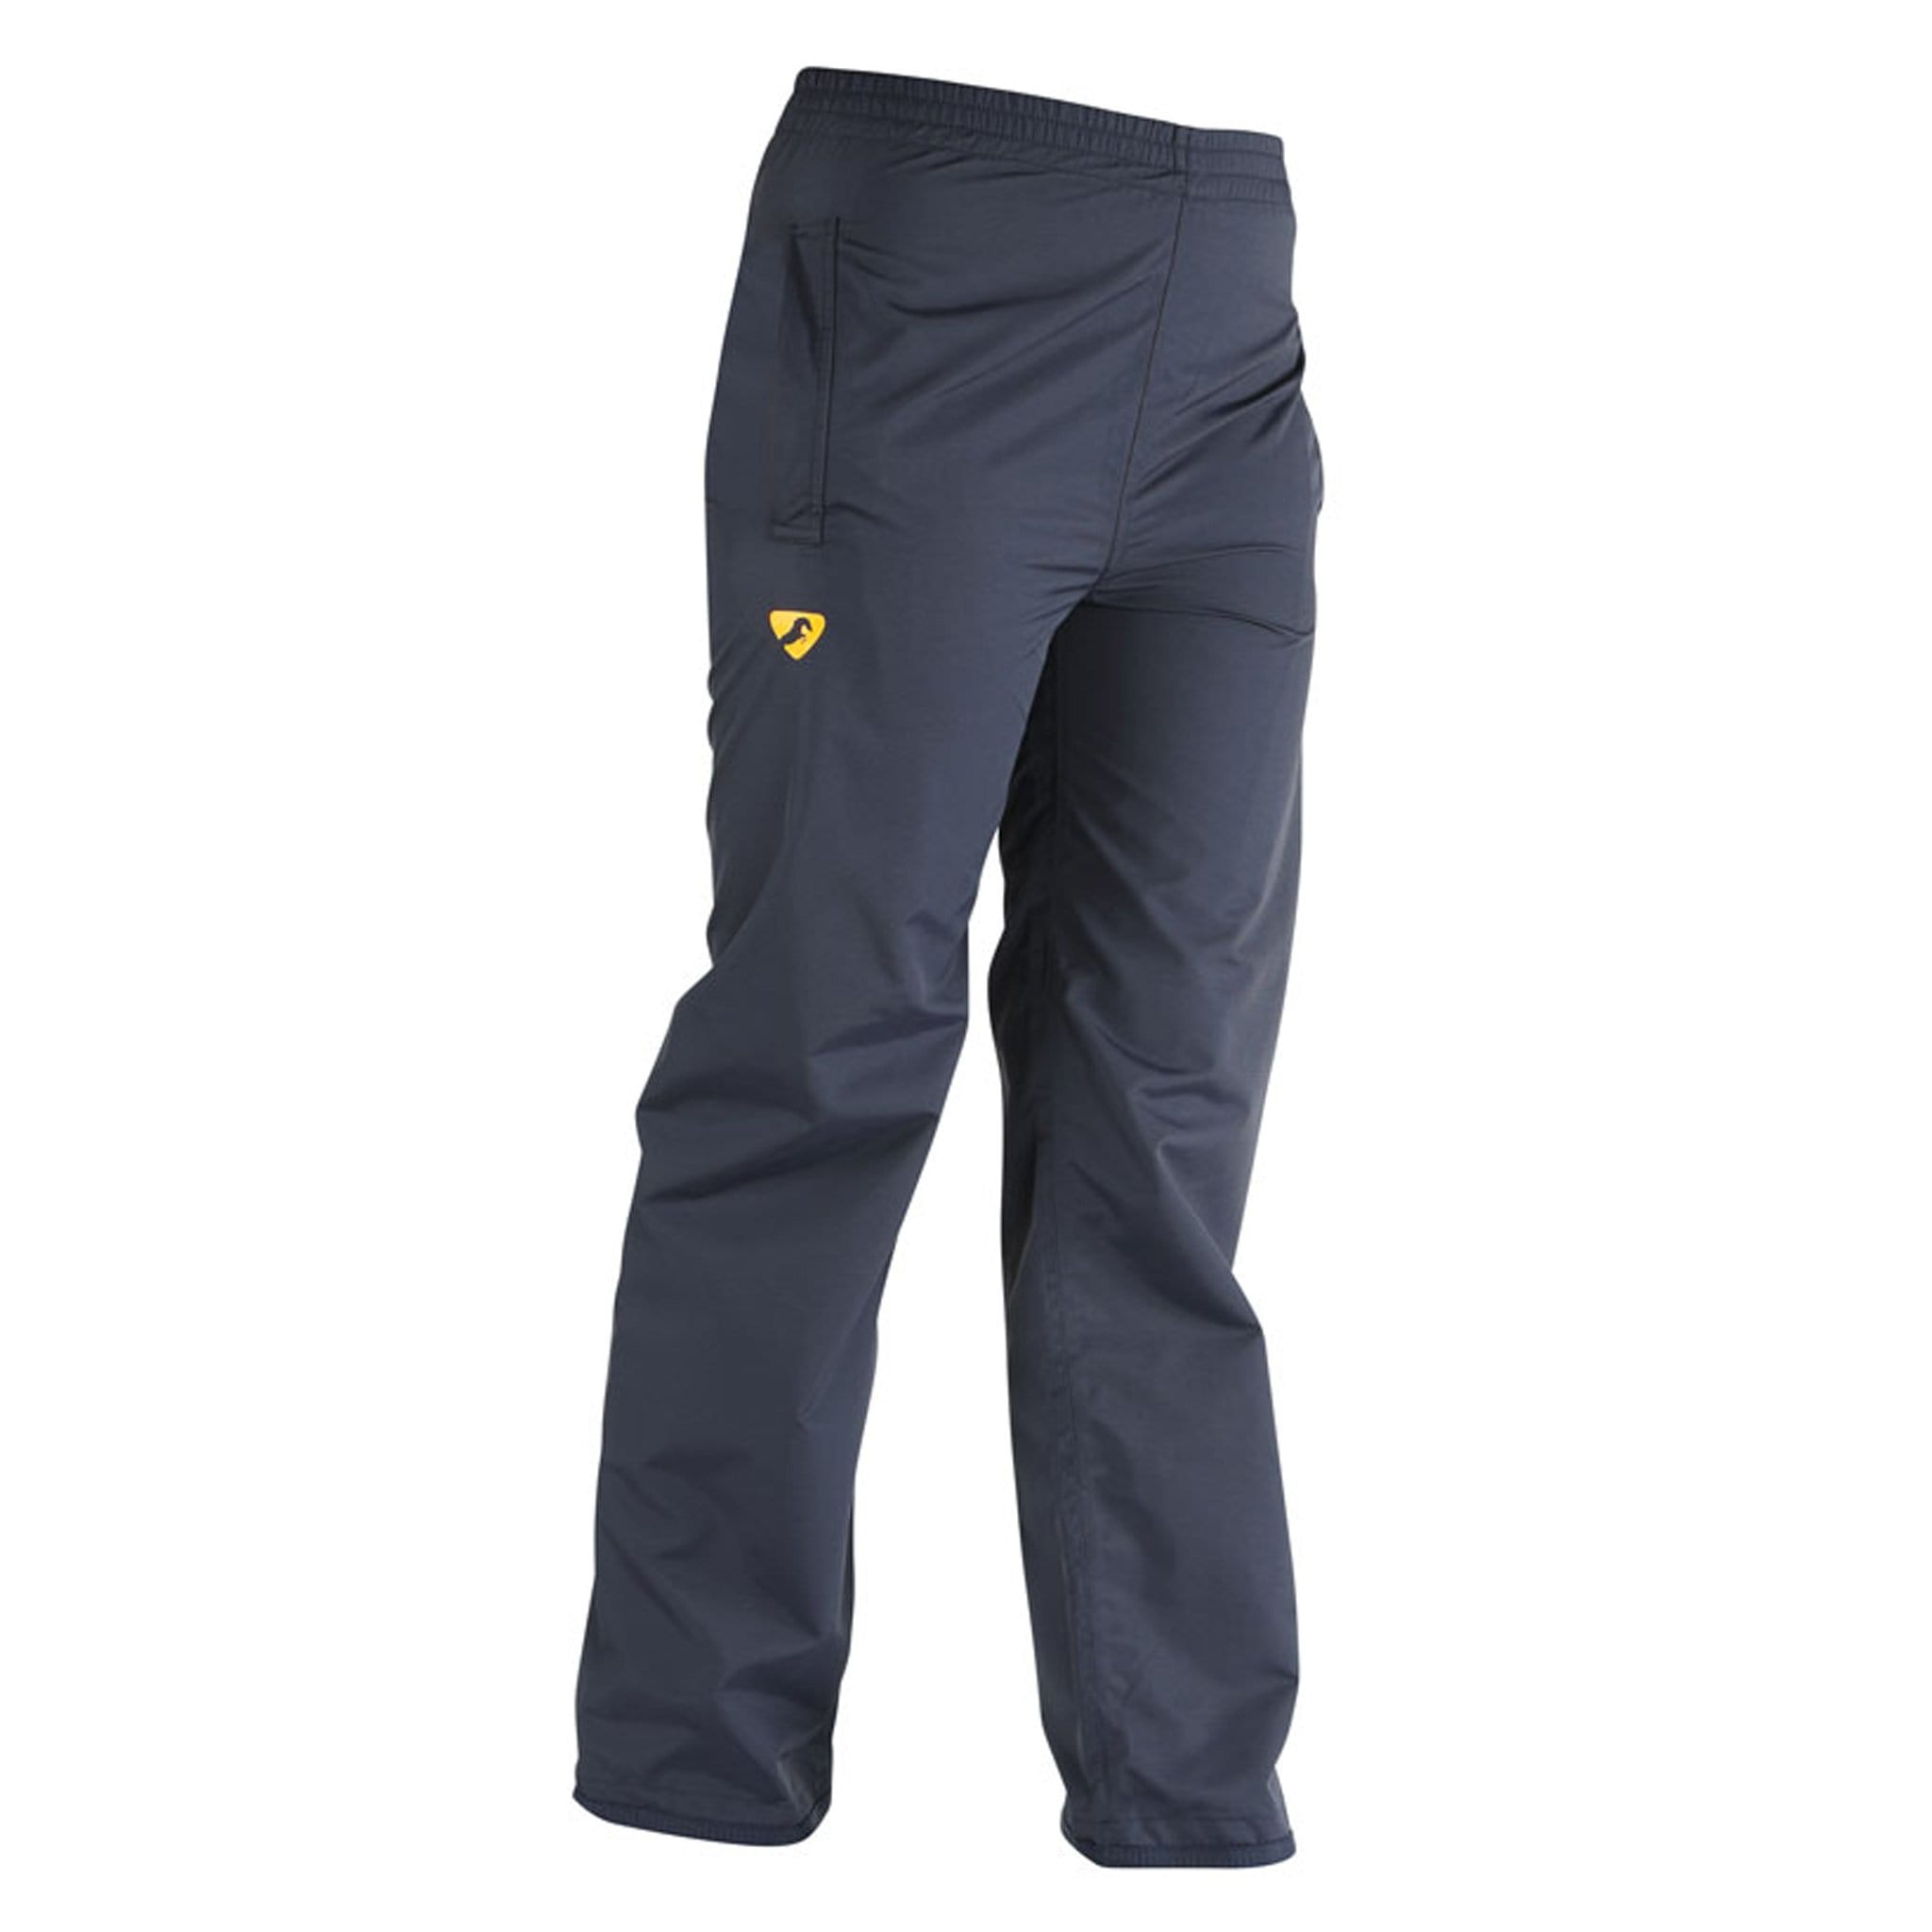 Shires Aubrion Unisex Waterproof Trousers 8236 Navy